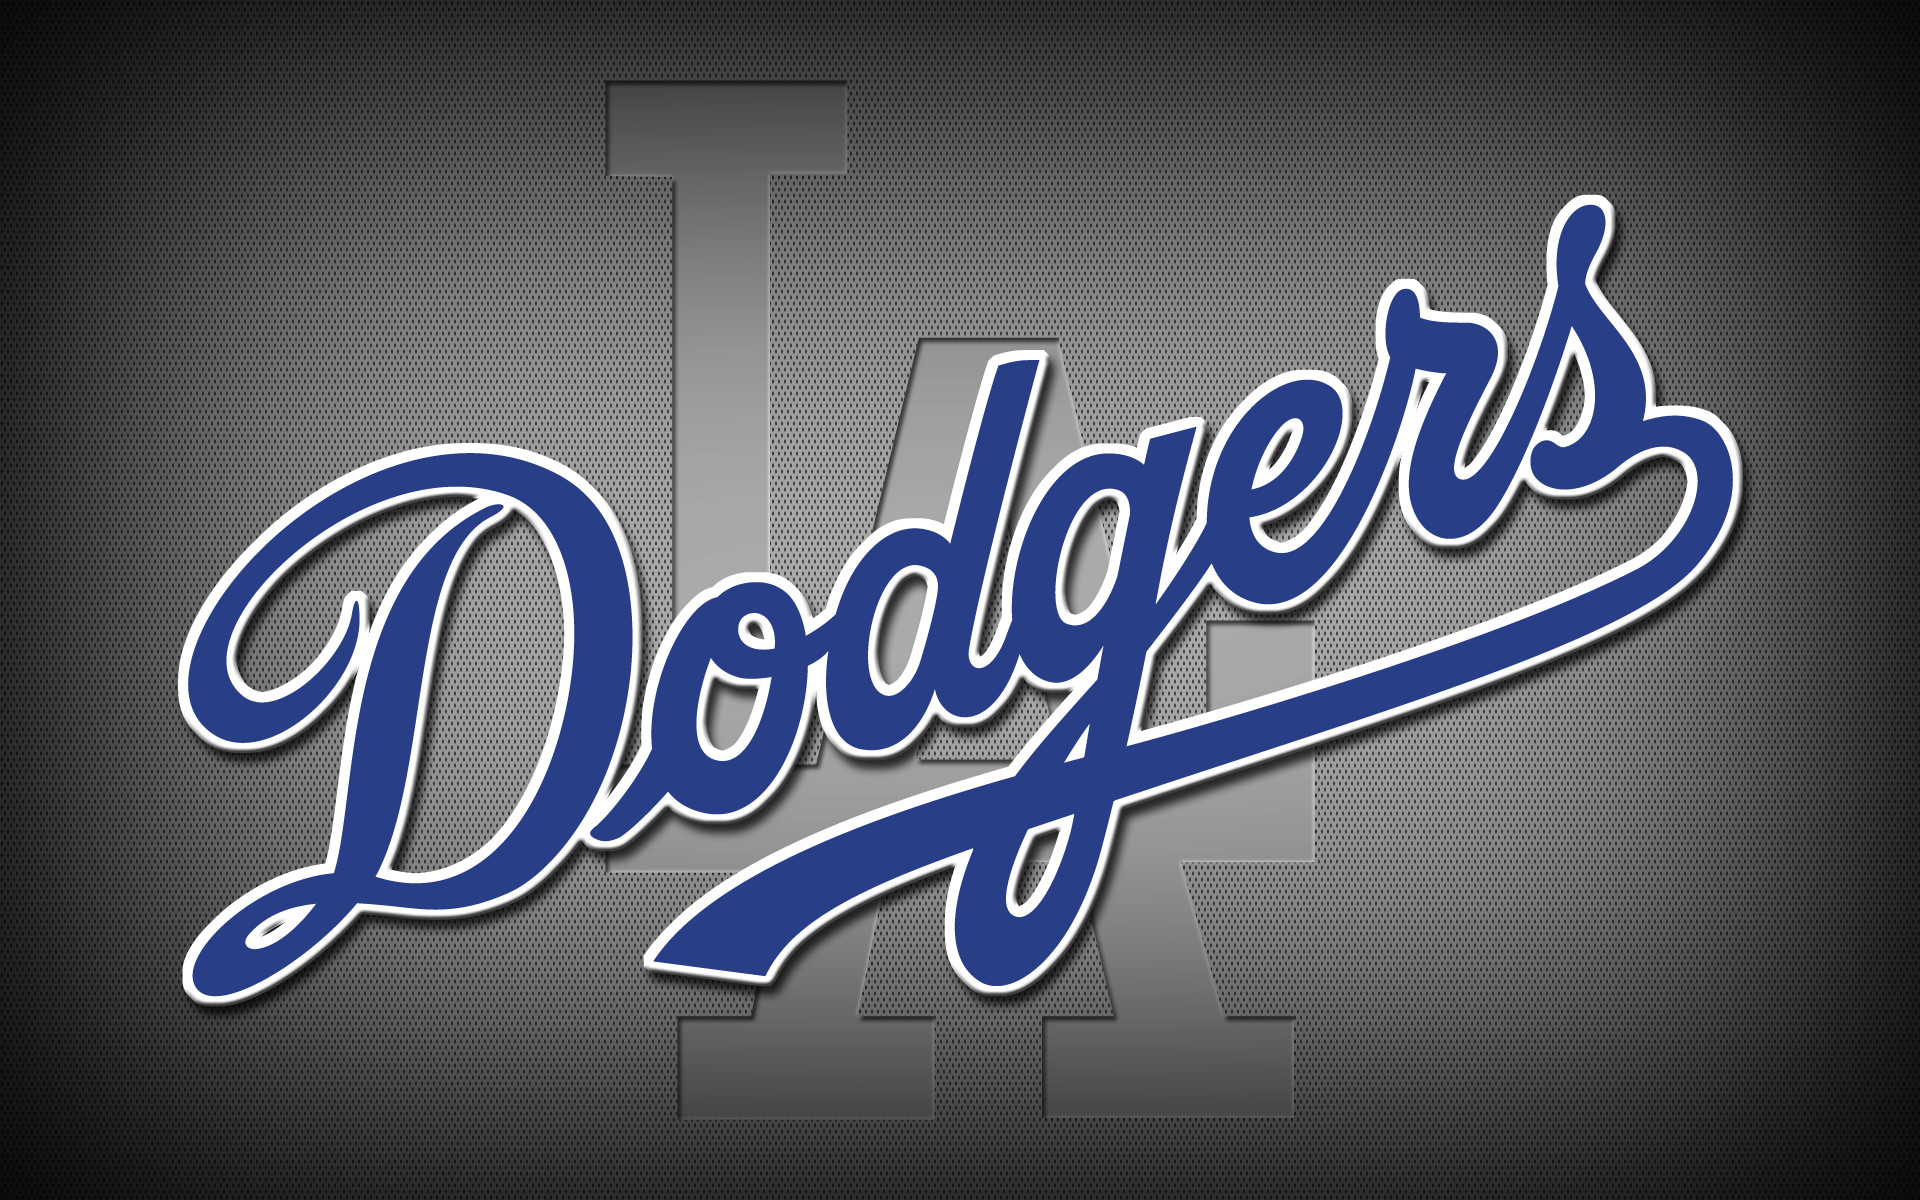 05/07/2015: Los Angeles Dodgers, px